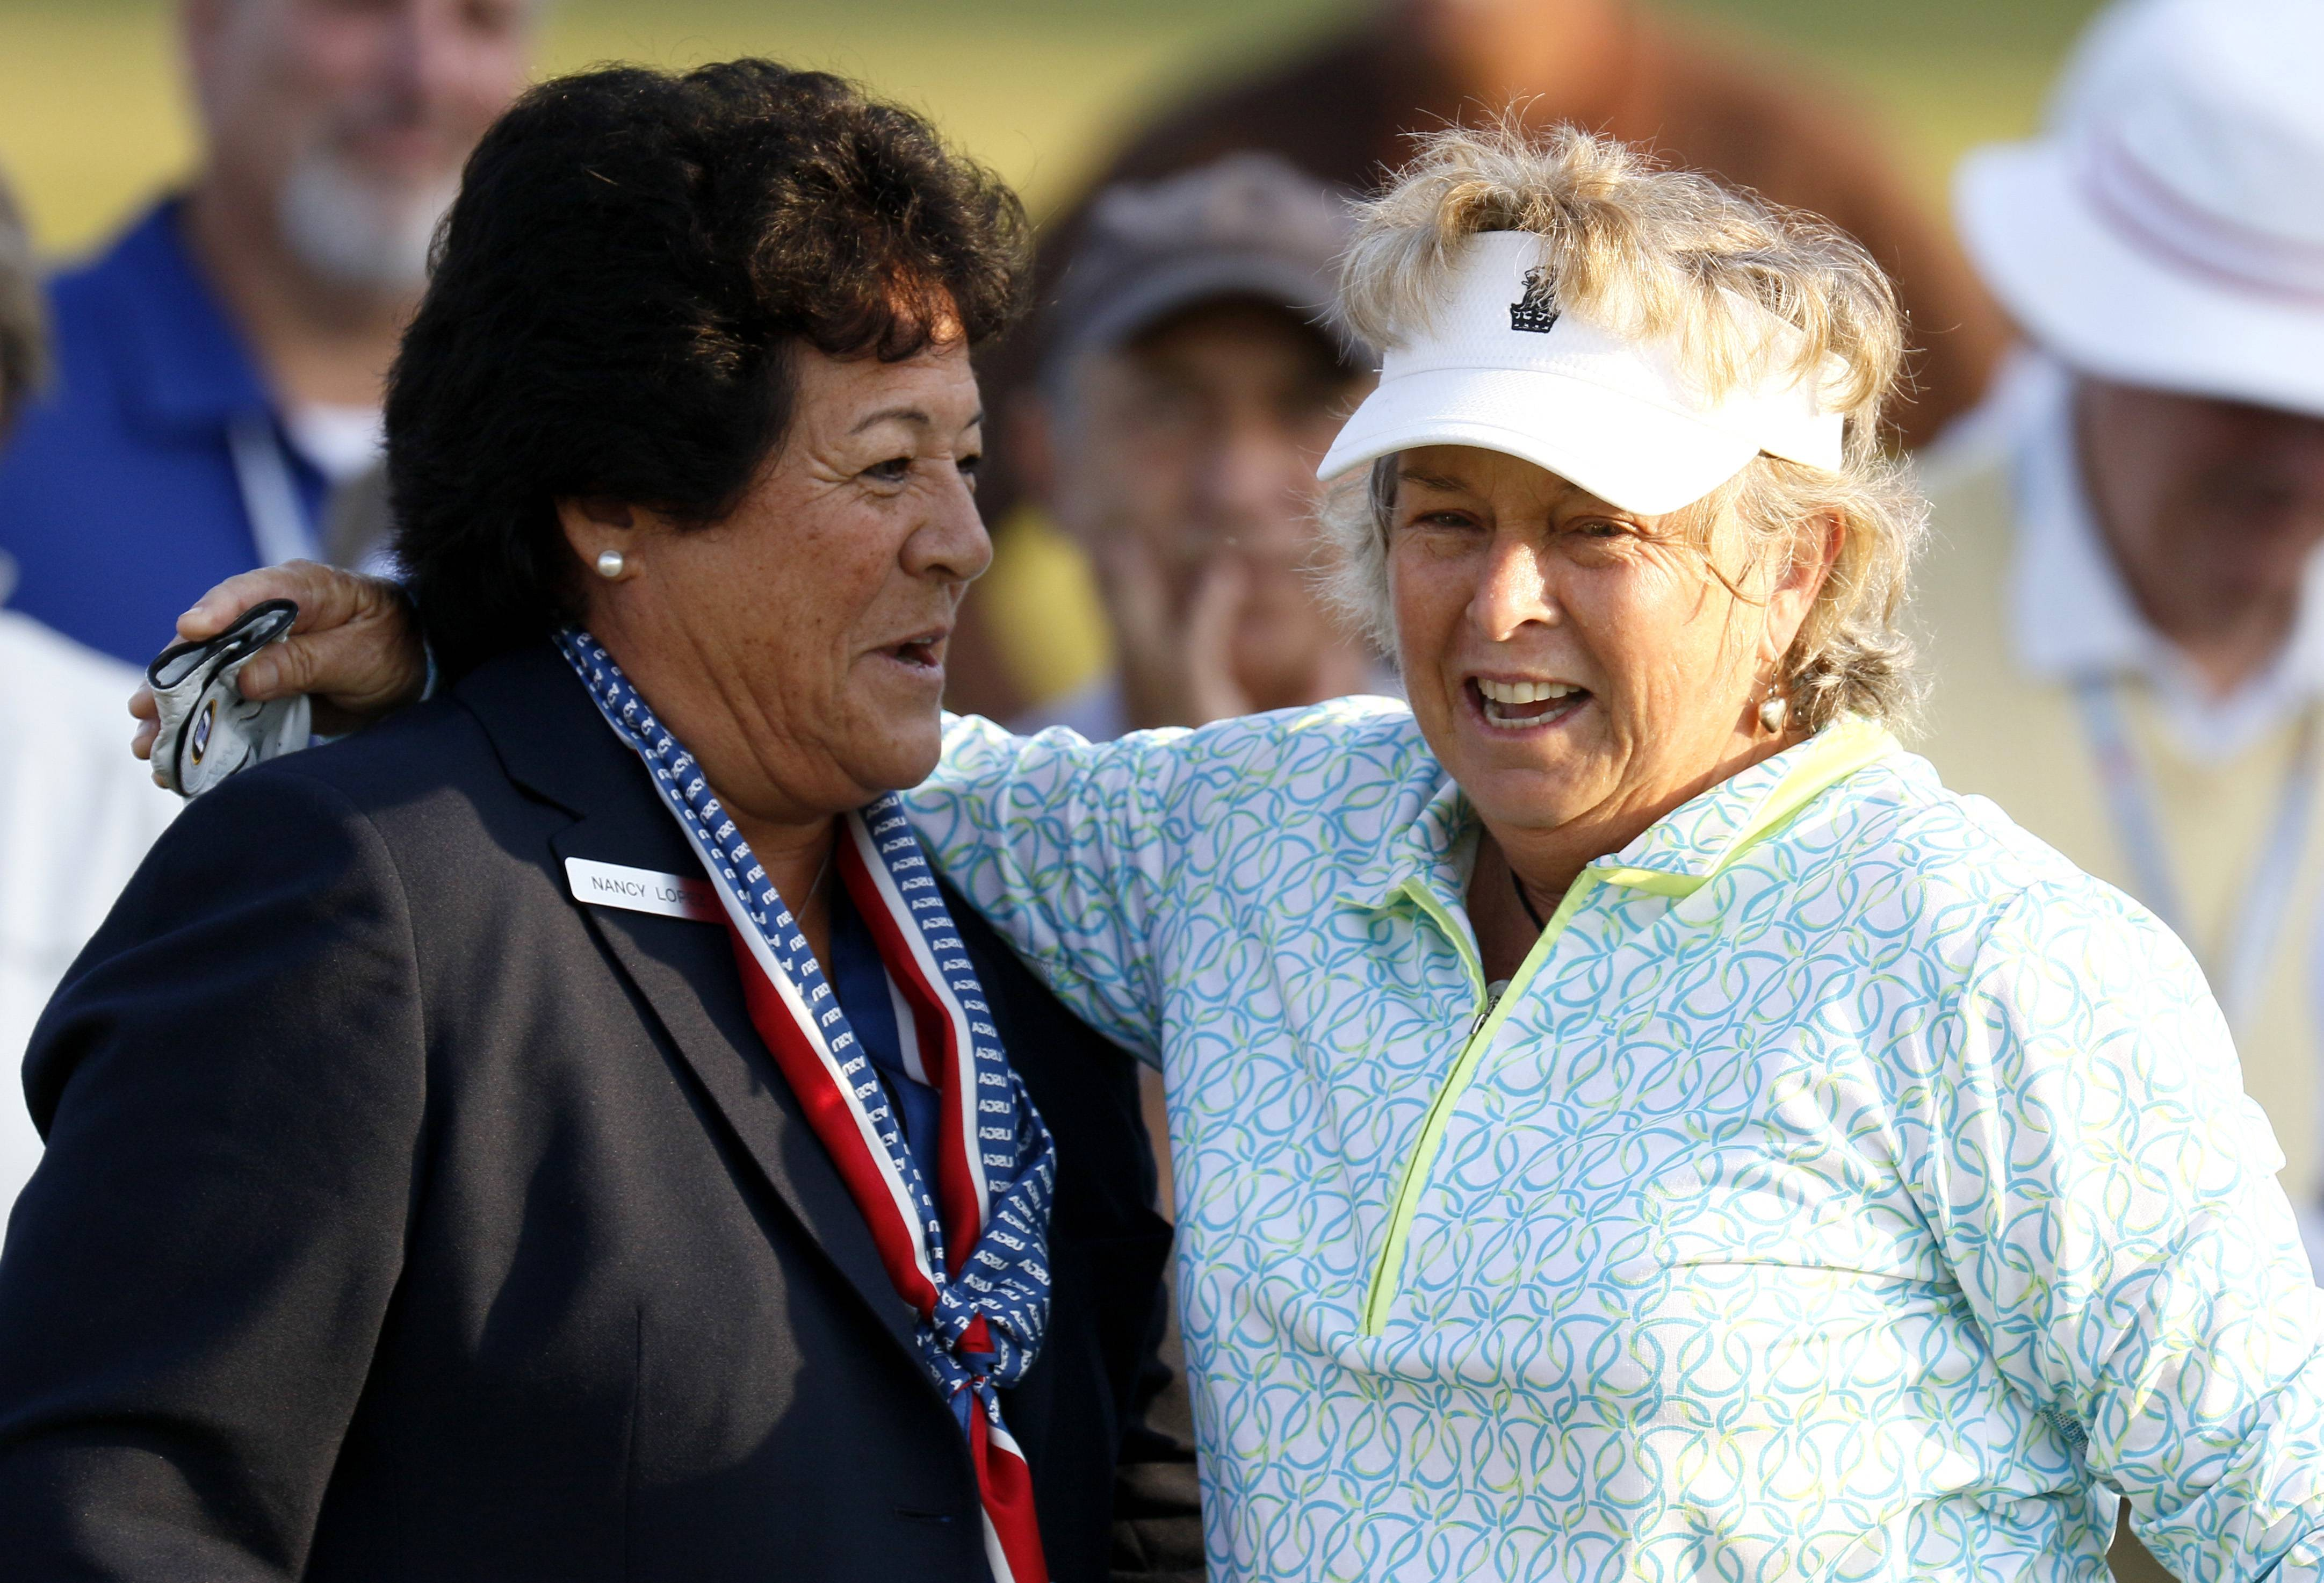 Nancy Lopez helps celebrate an emotional start to the U.S. Senior Women's Open